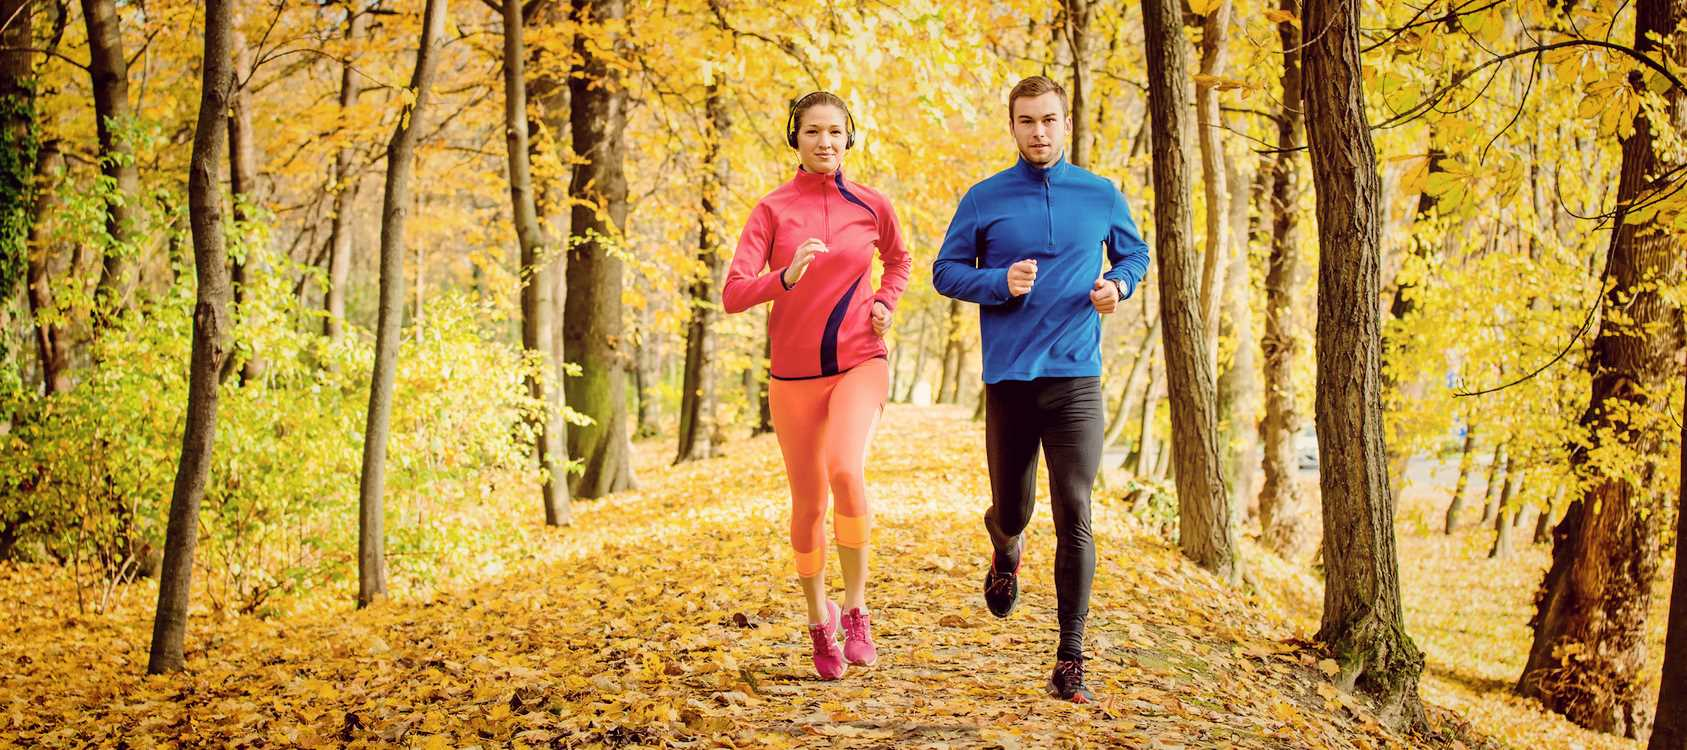 Selecting The Proper Running Shoe To Prevent Hip Pain Springfield MO